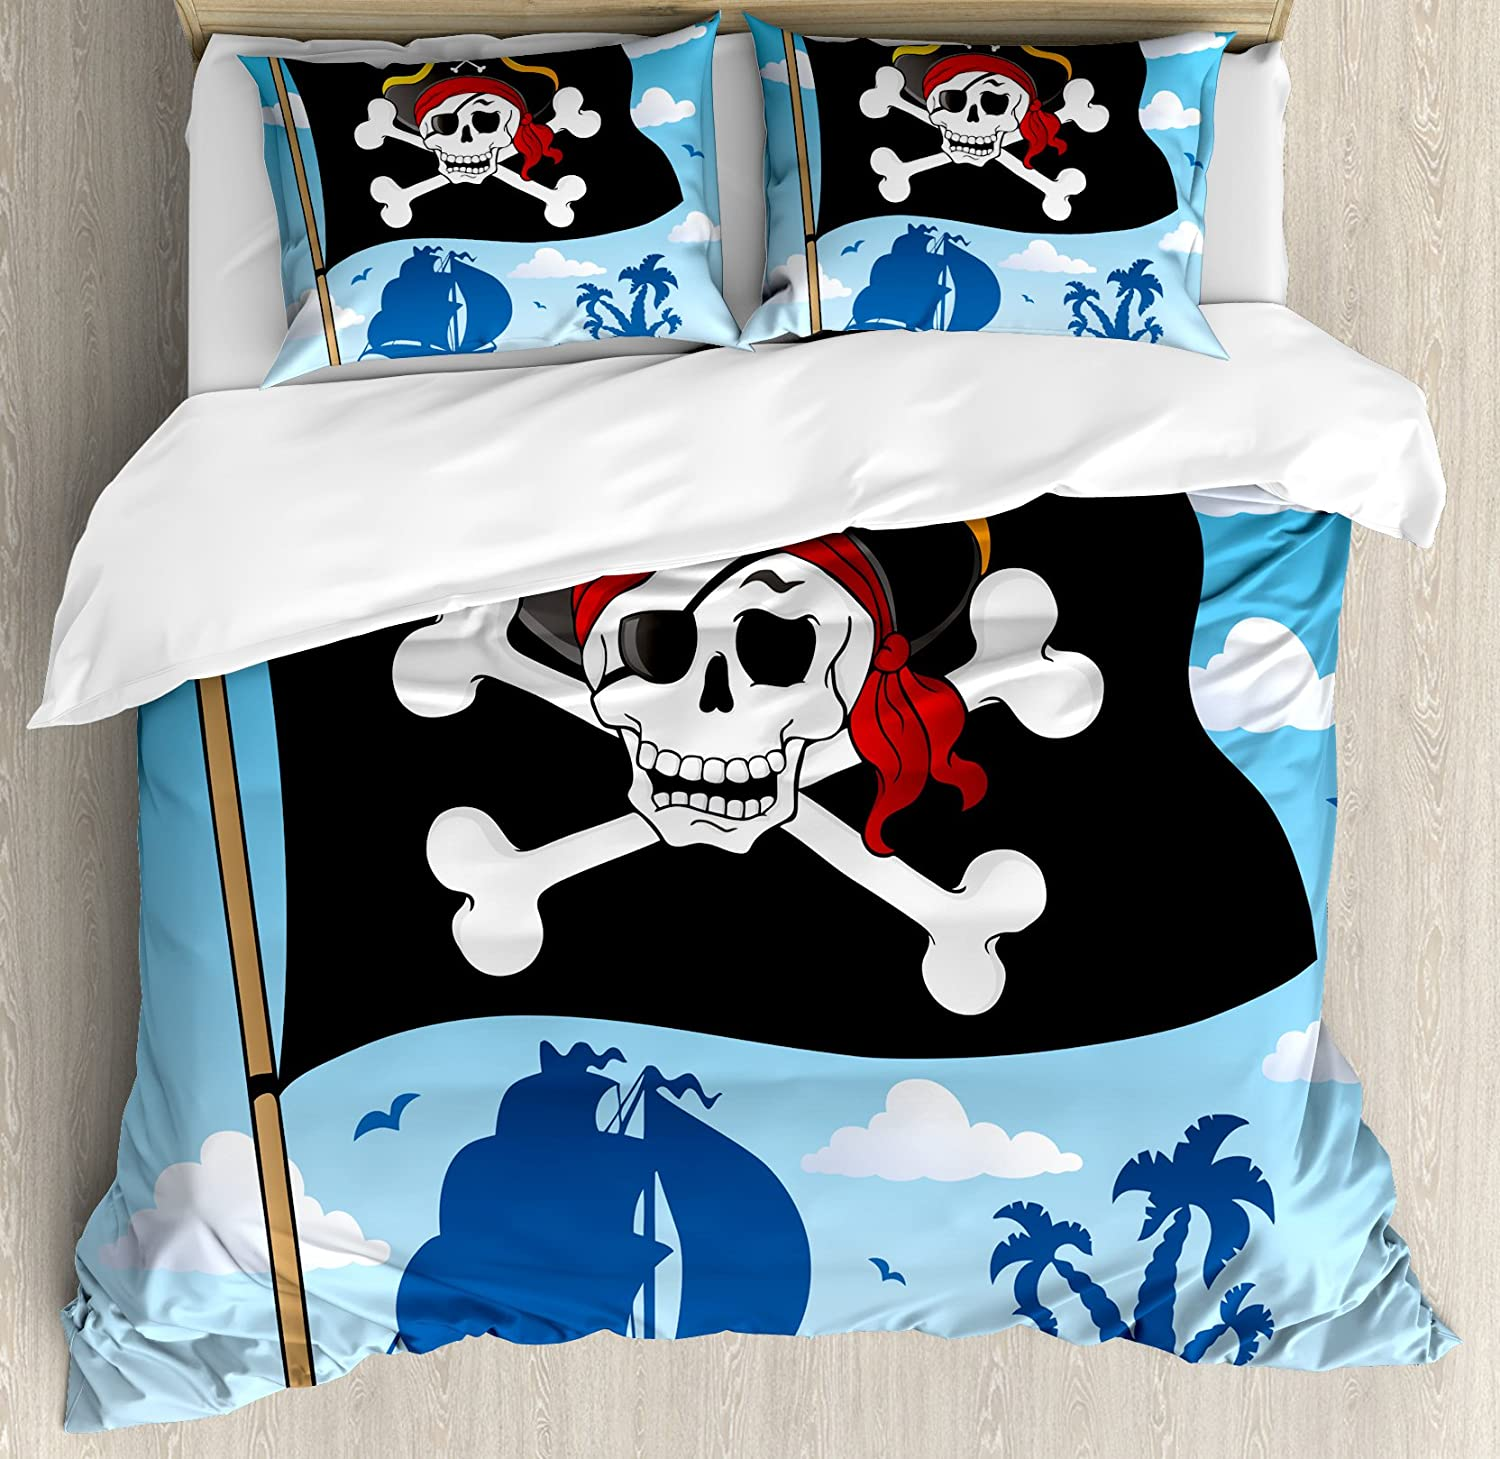 Ambesonne Pirate Duvet Cover Set Danger Spring new work one Ranking TOP9 after another Beware Sign Pirates of